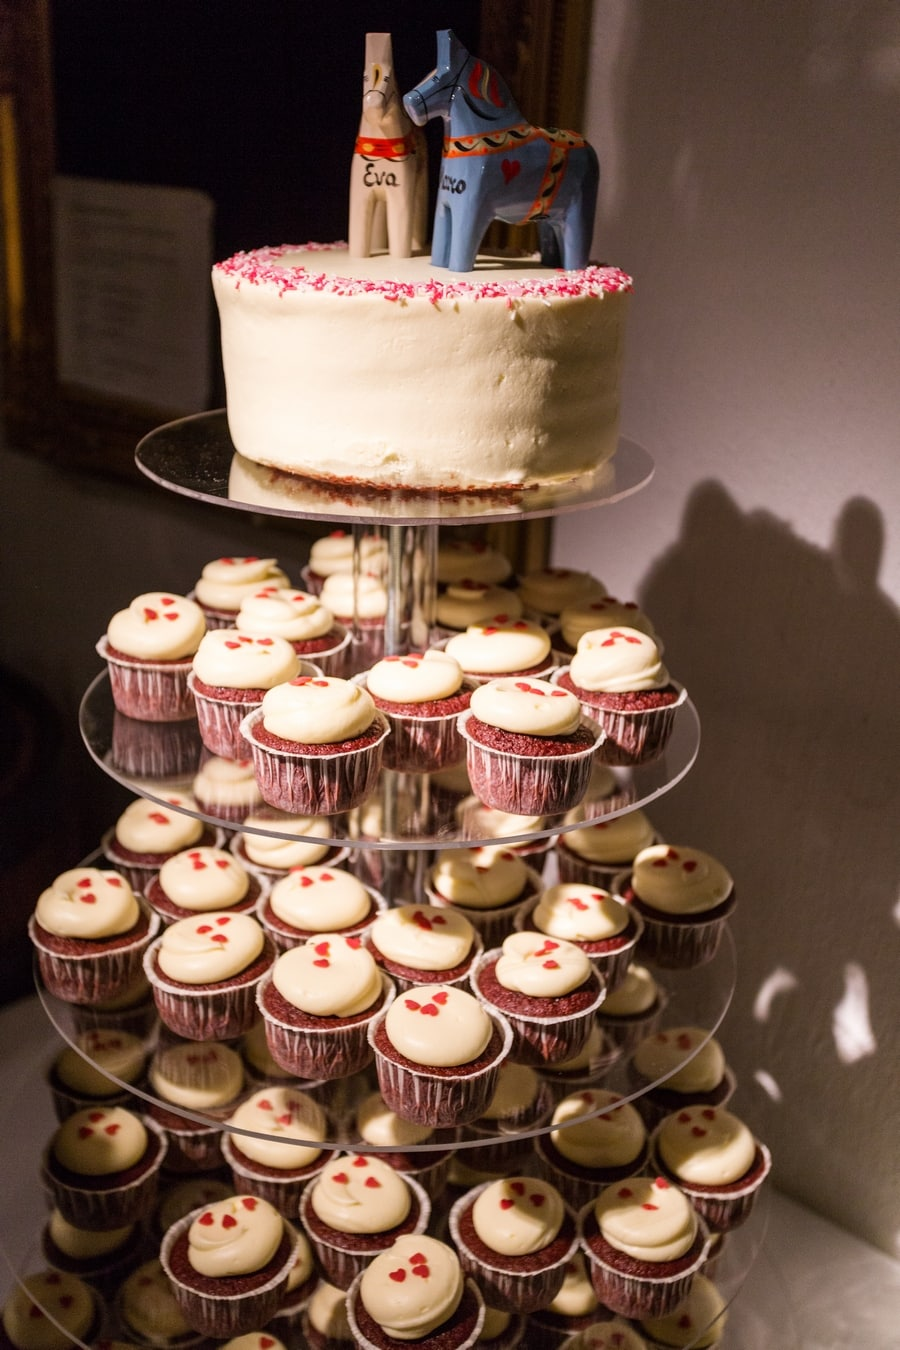 My wedding reception: the wedding cake made of red velvet cupcakes with dala horses on top